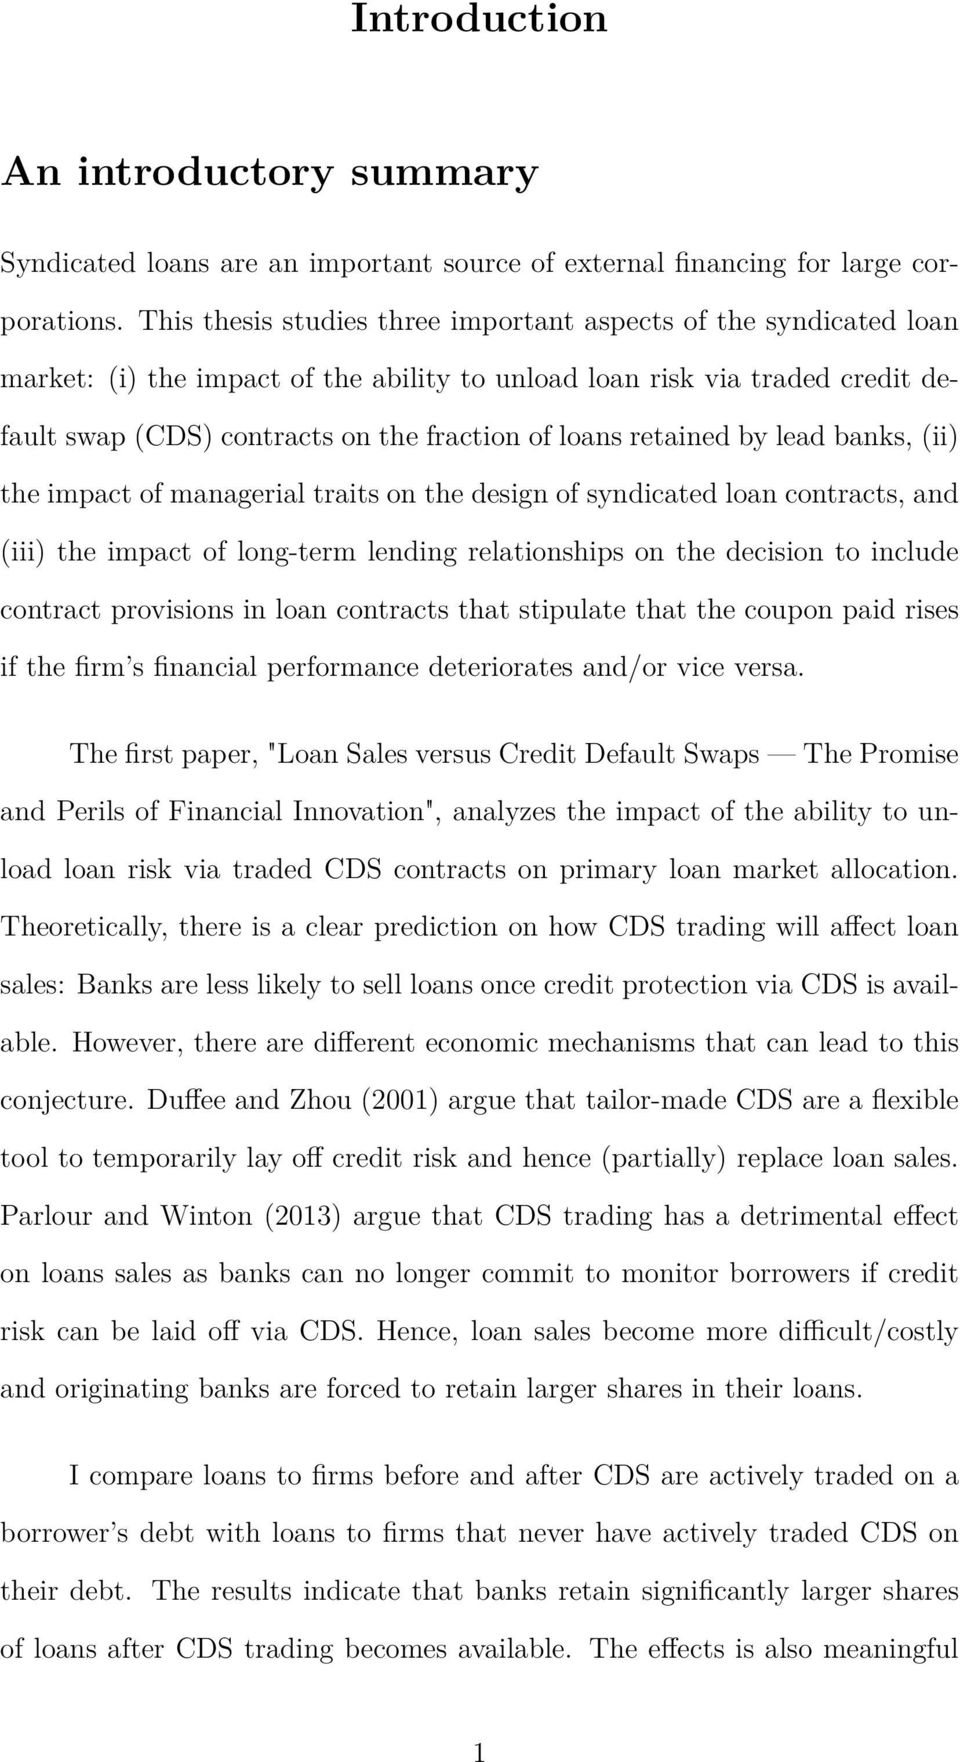 retained by lead banks, (ii) the impact of managerial traits on the design of syndicated loan contracts, and (iii) the impact of long-term lending relationships on the decision to include contract